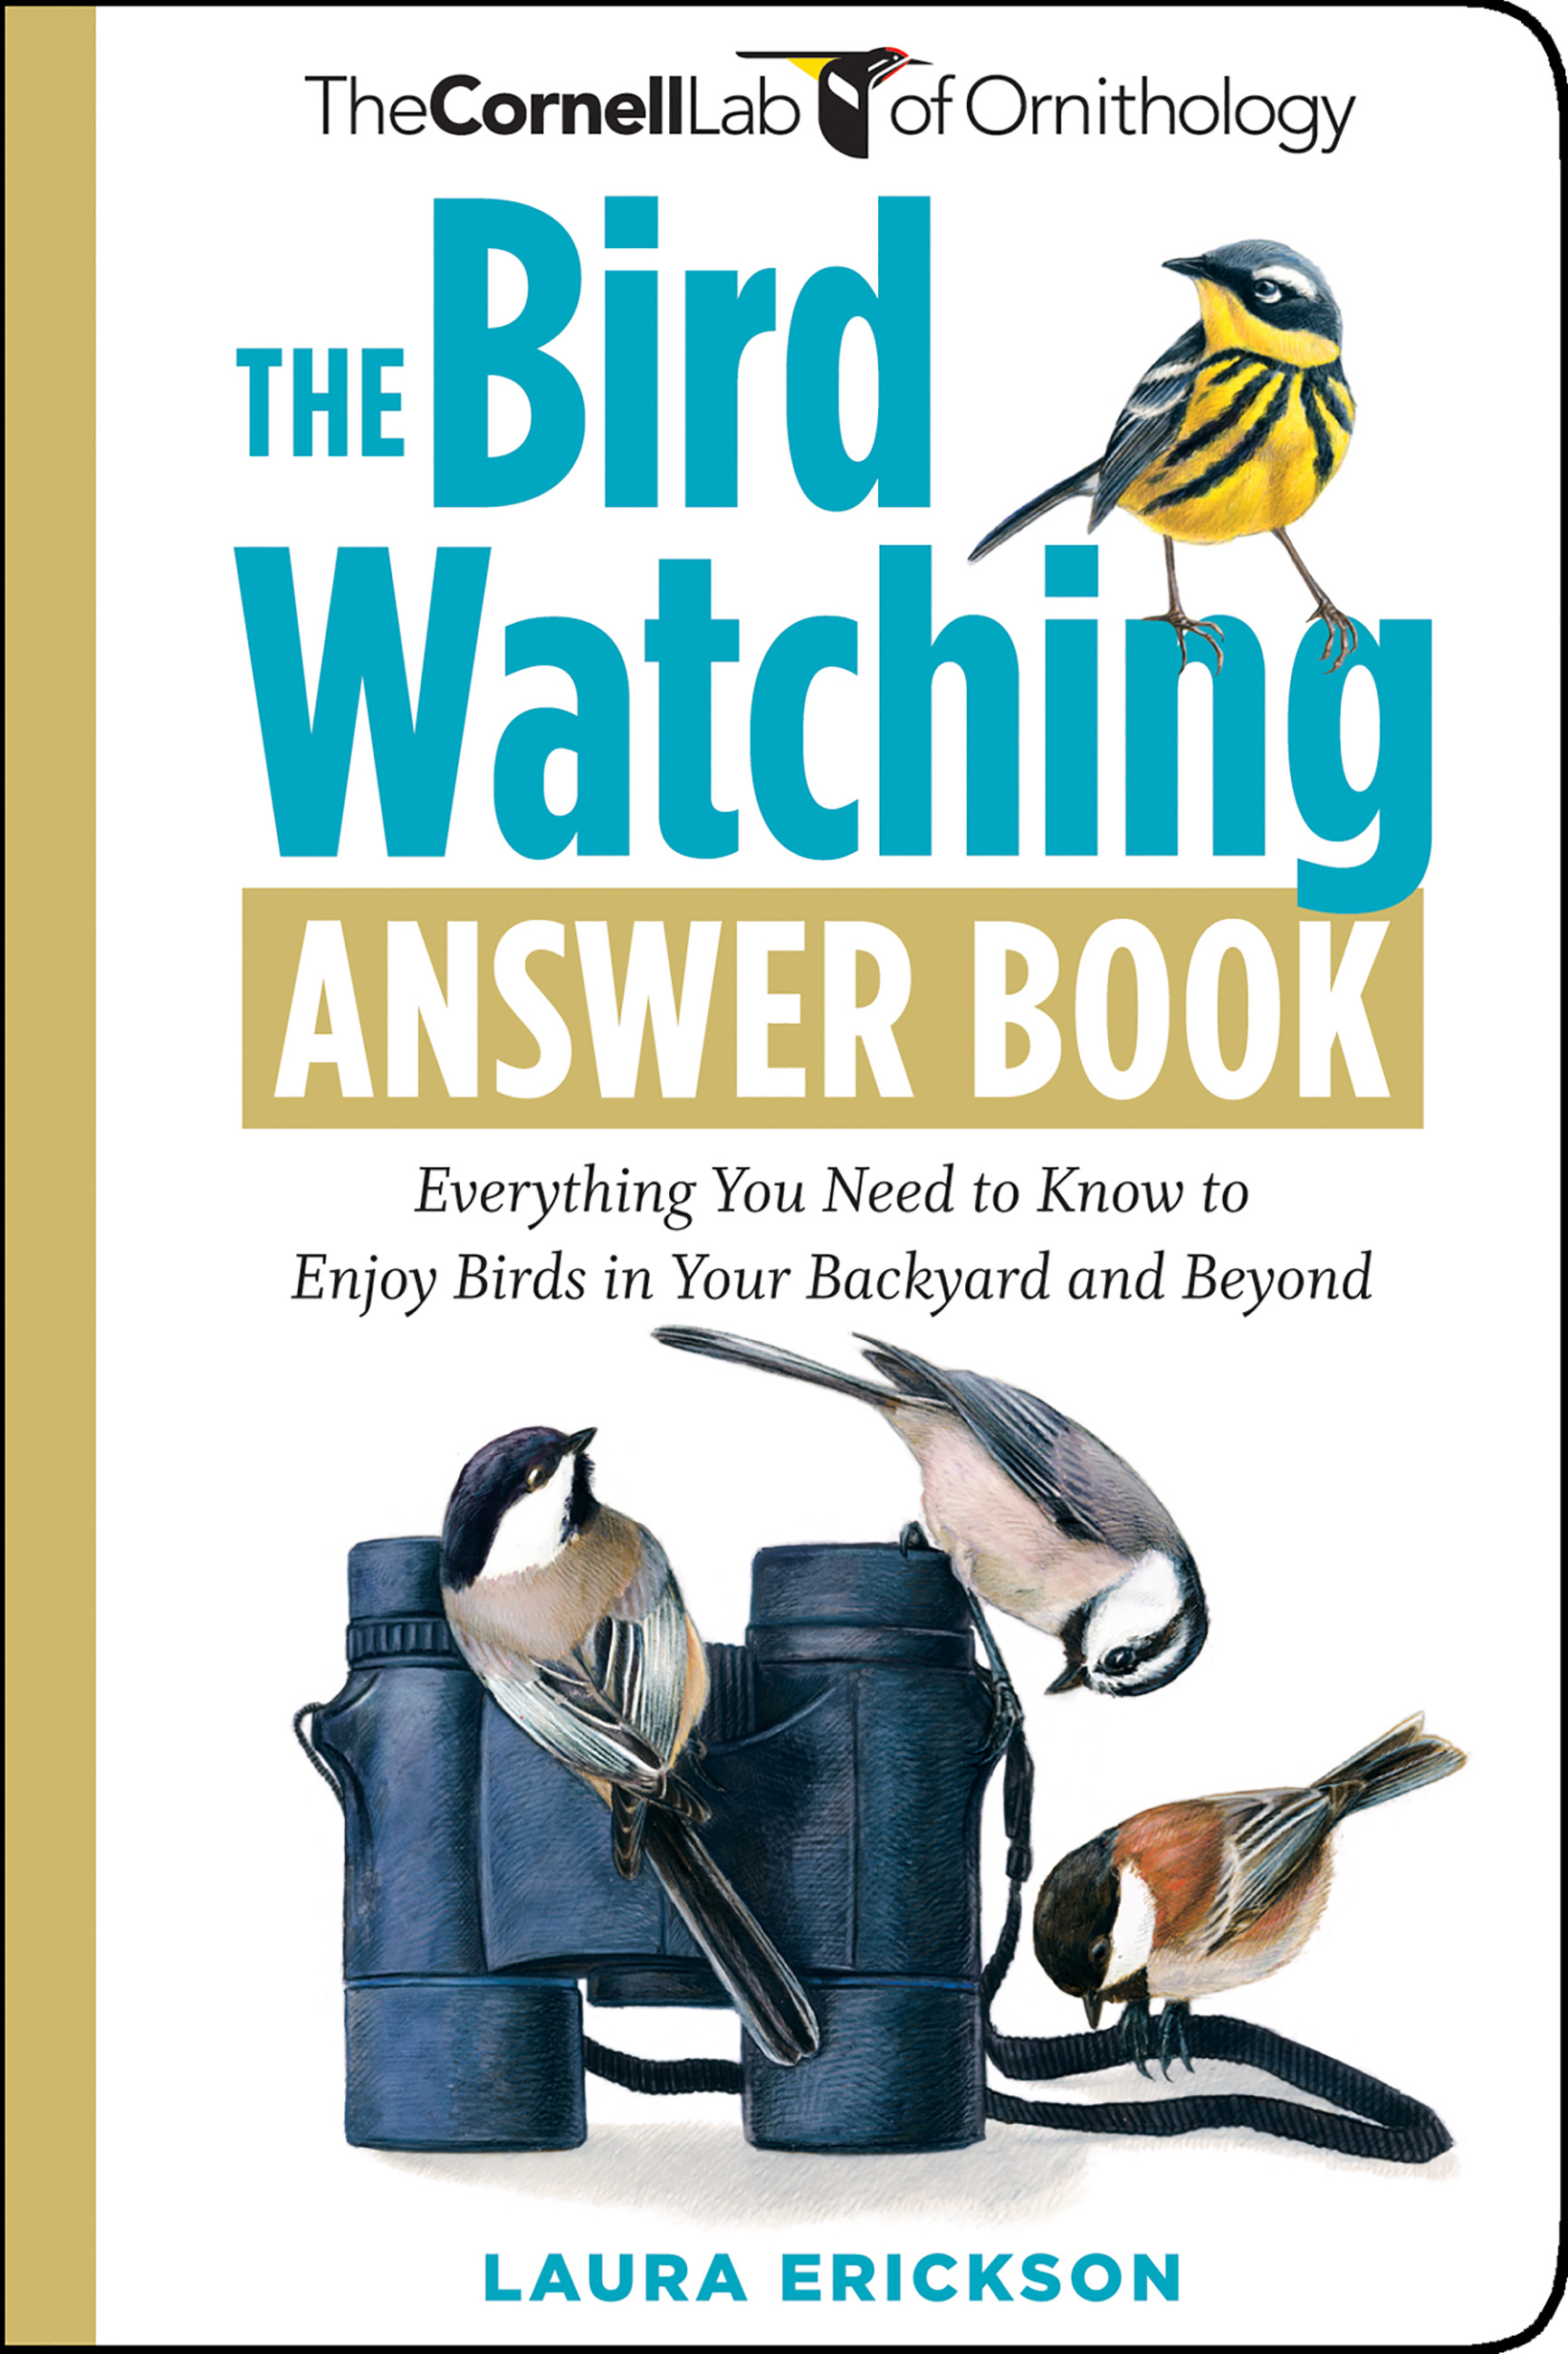 The Bird Watching Answer Book Everything You Need to Know to Enjoy Birds in Your Backyard and Beyond